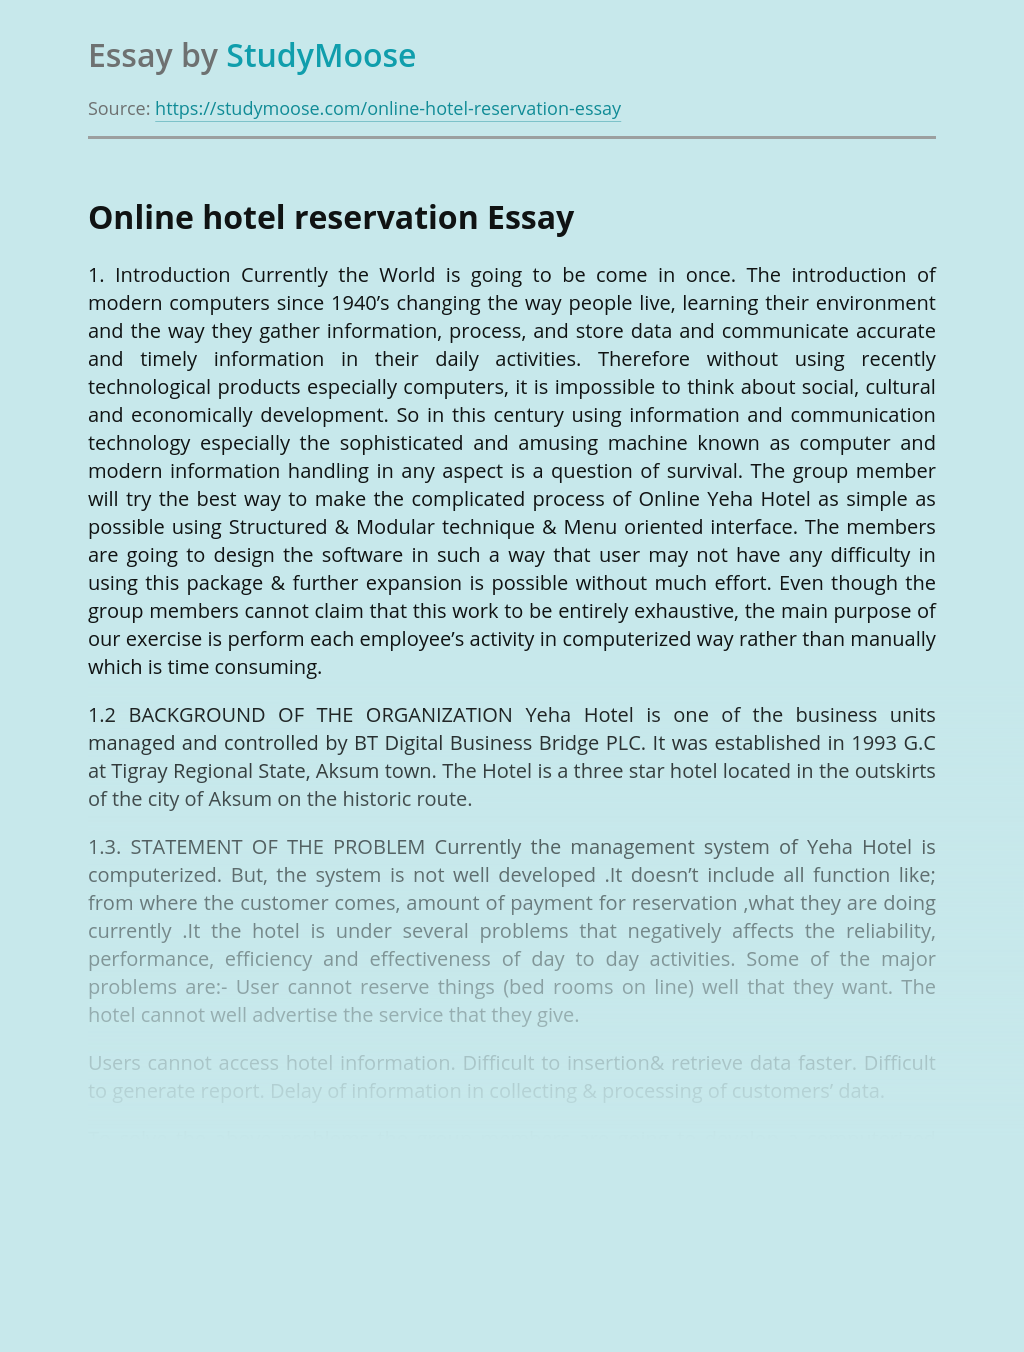 Online Management System for Yeha Hotel Reservation